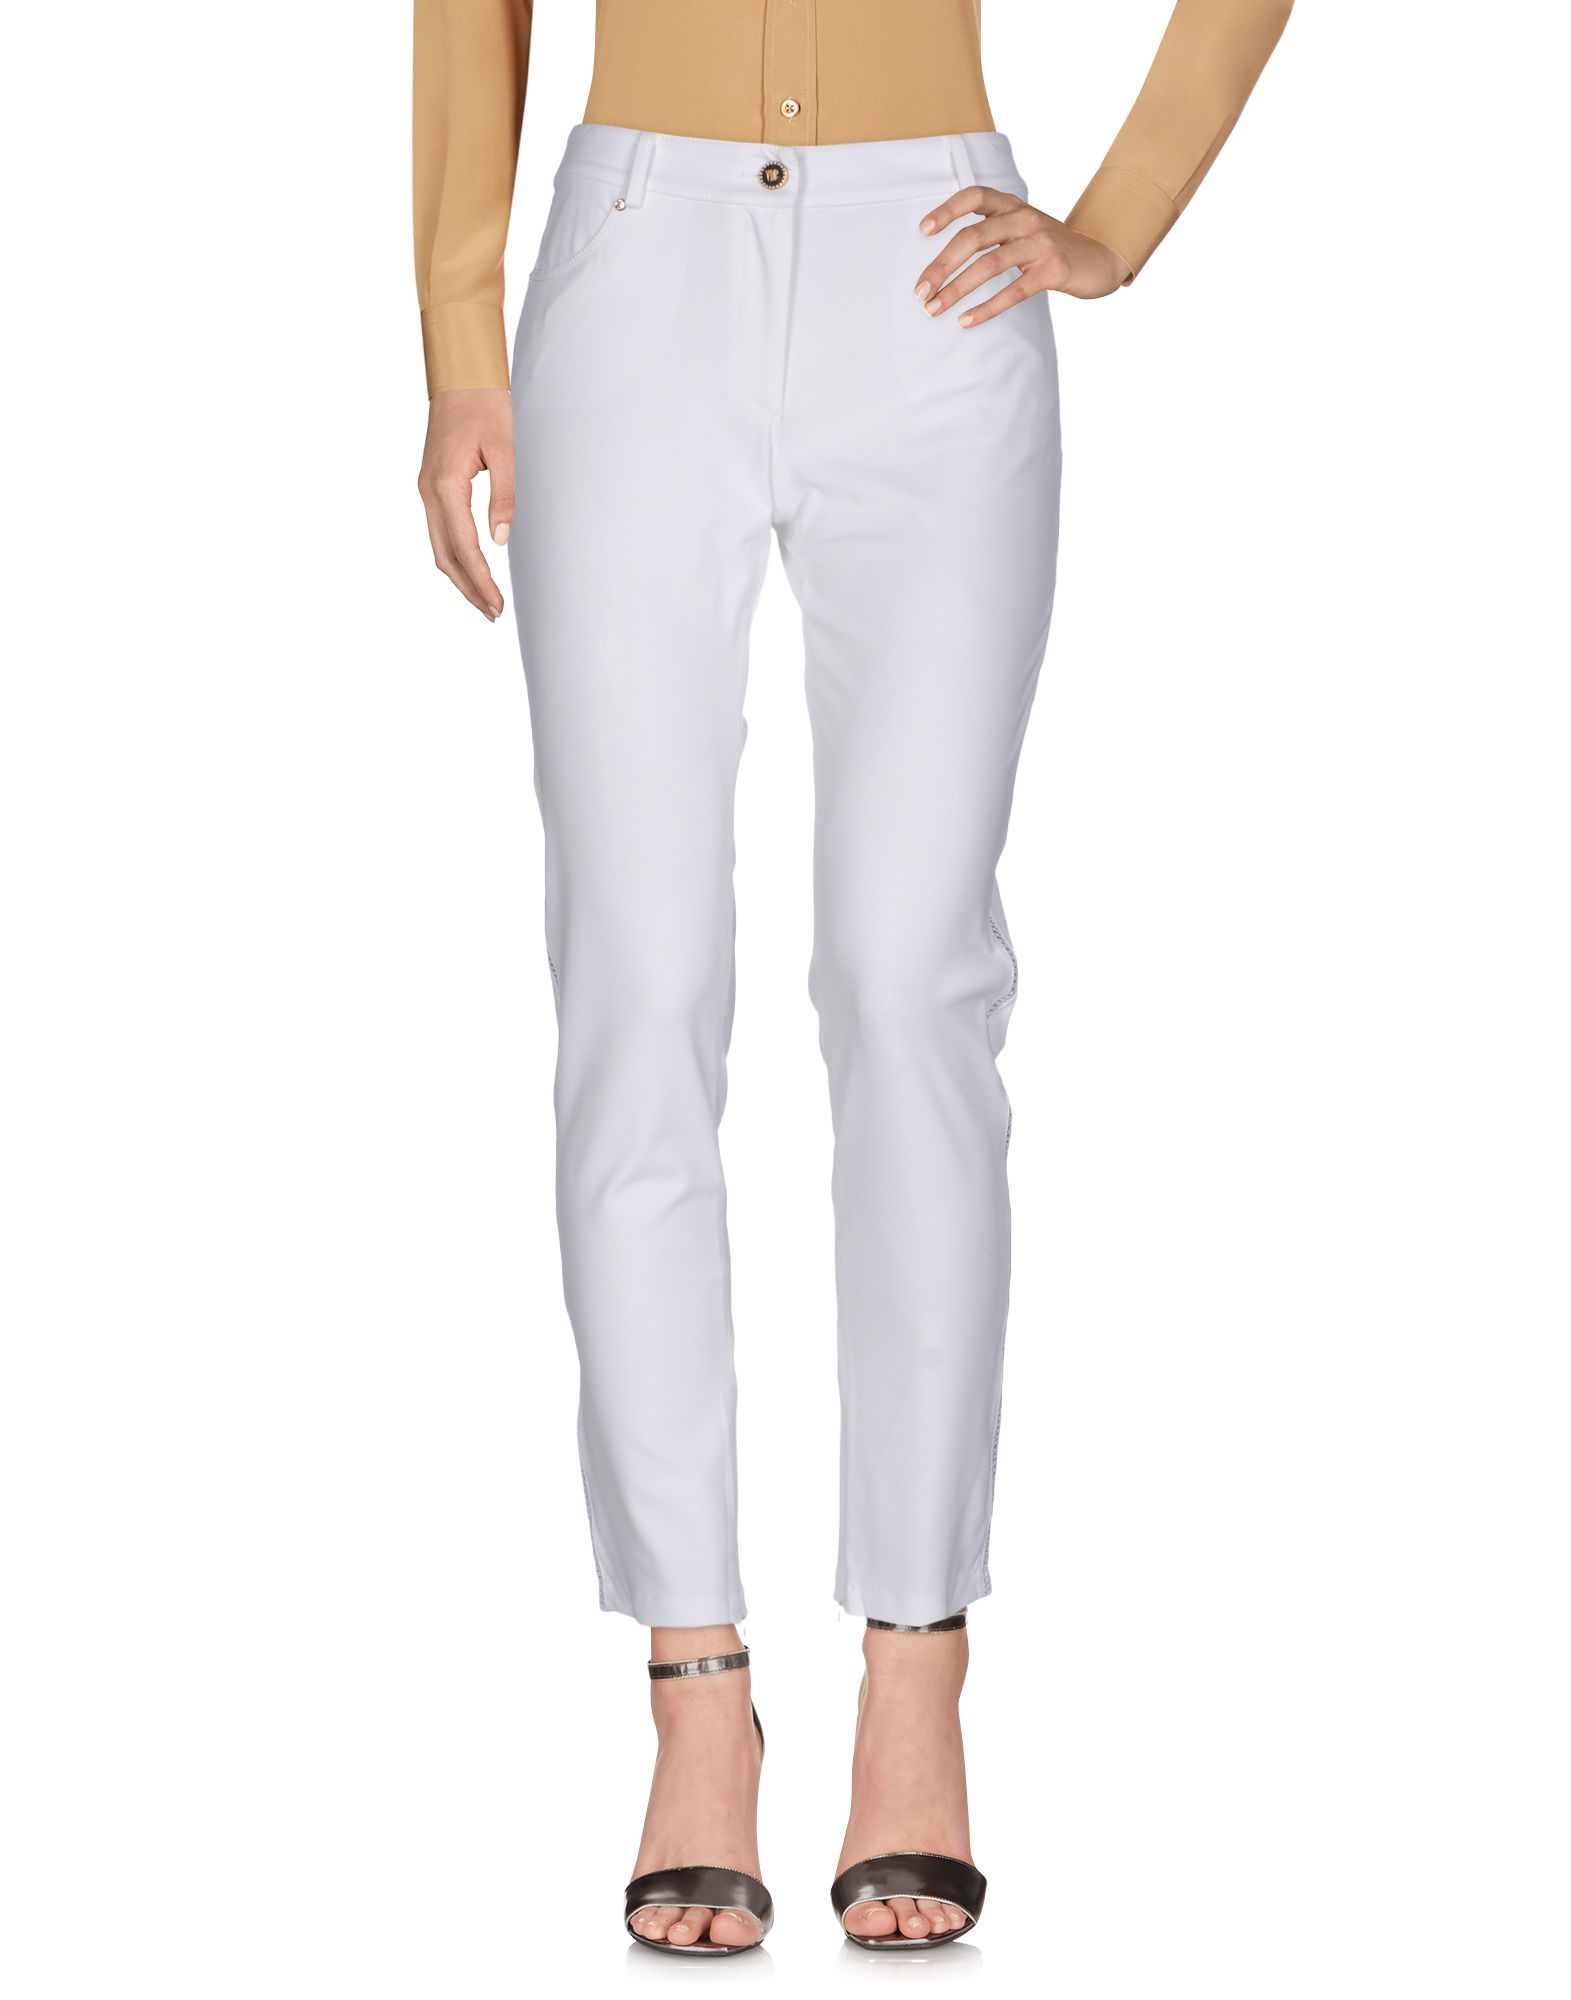 Pantalone Vdp Collection Donna - Acquista online su Adggh